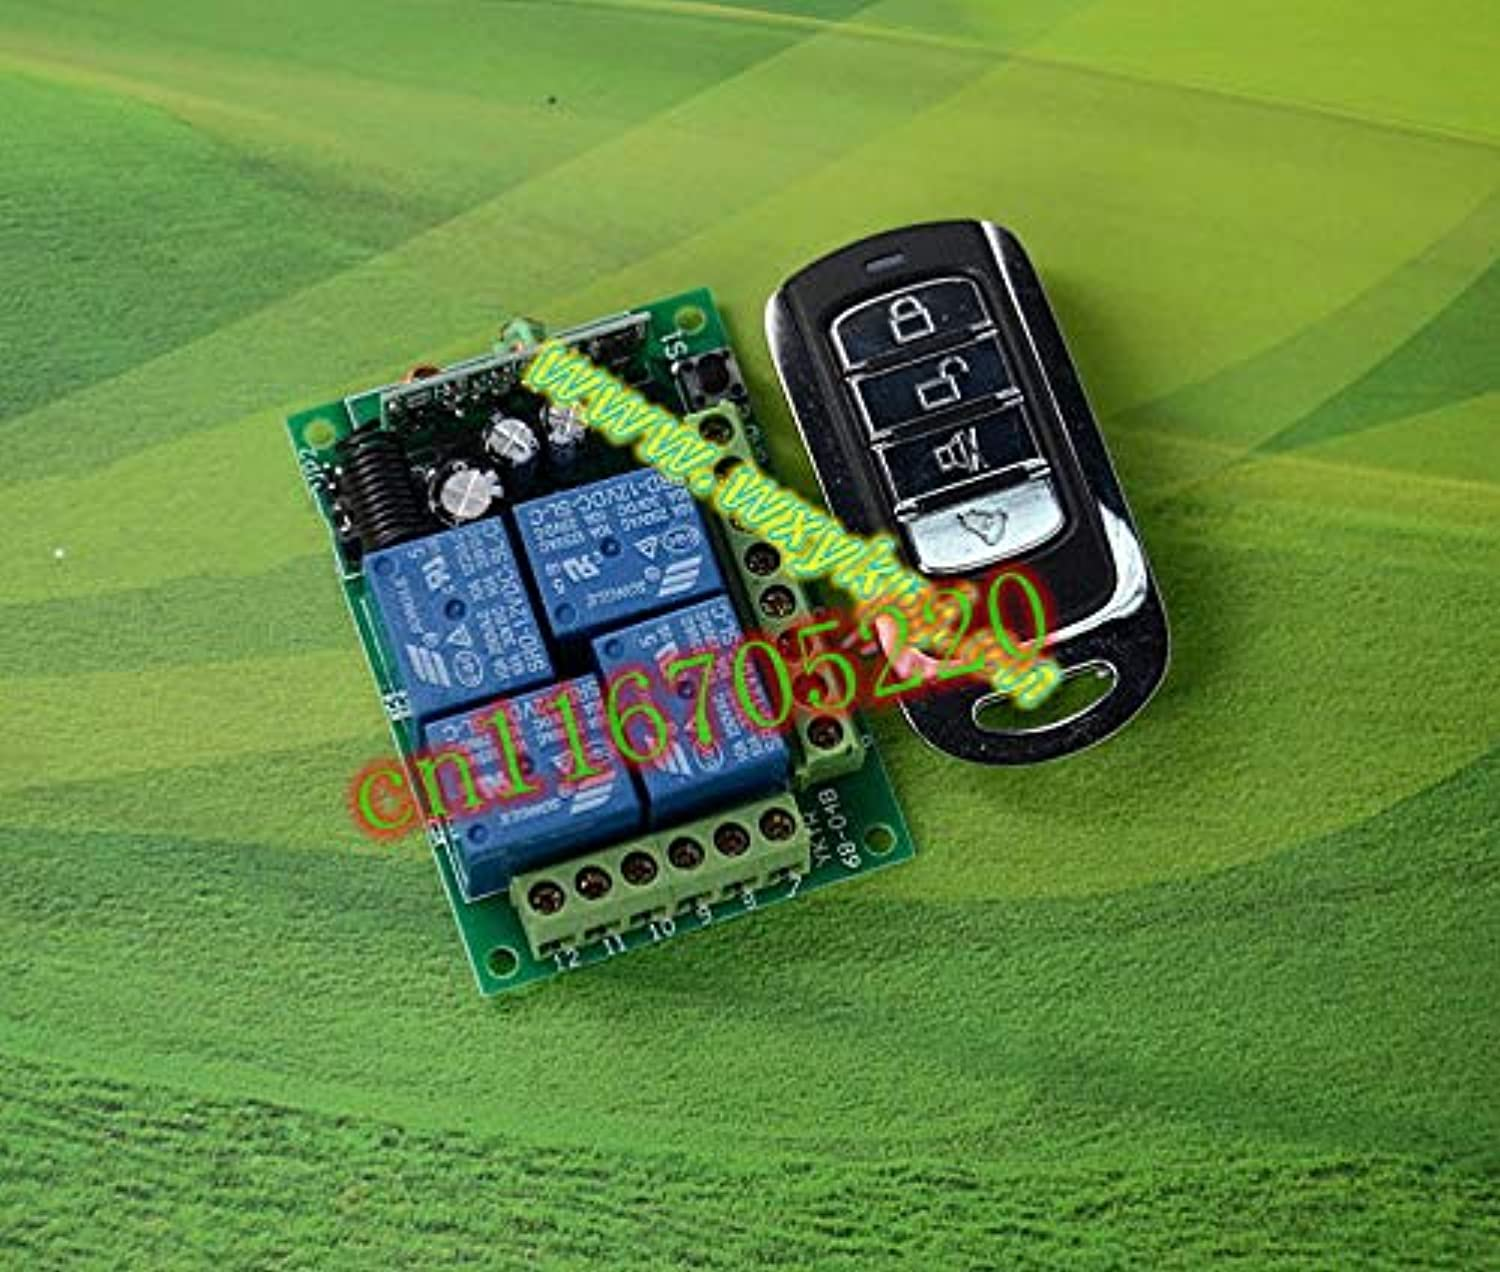 Dc 12v 10a 4 CH Wireless Remote Control Switch System DC 12V Latched Momentary Toggle Change Freely add Controller 315MHz 433MHz